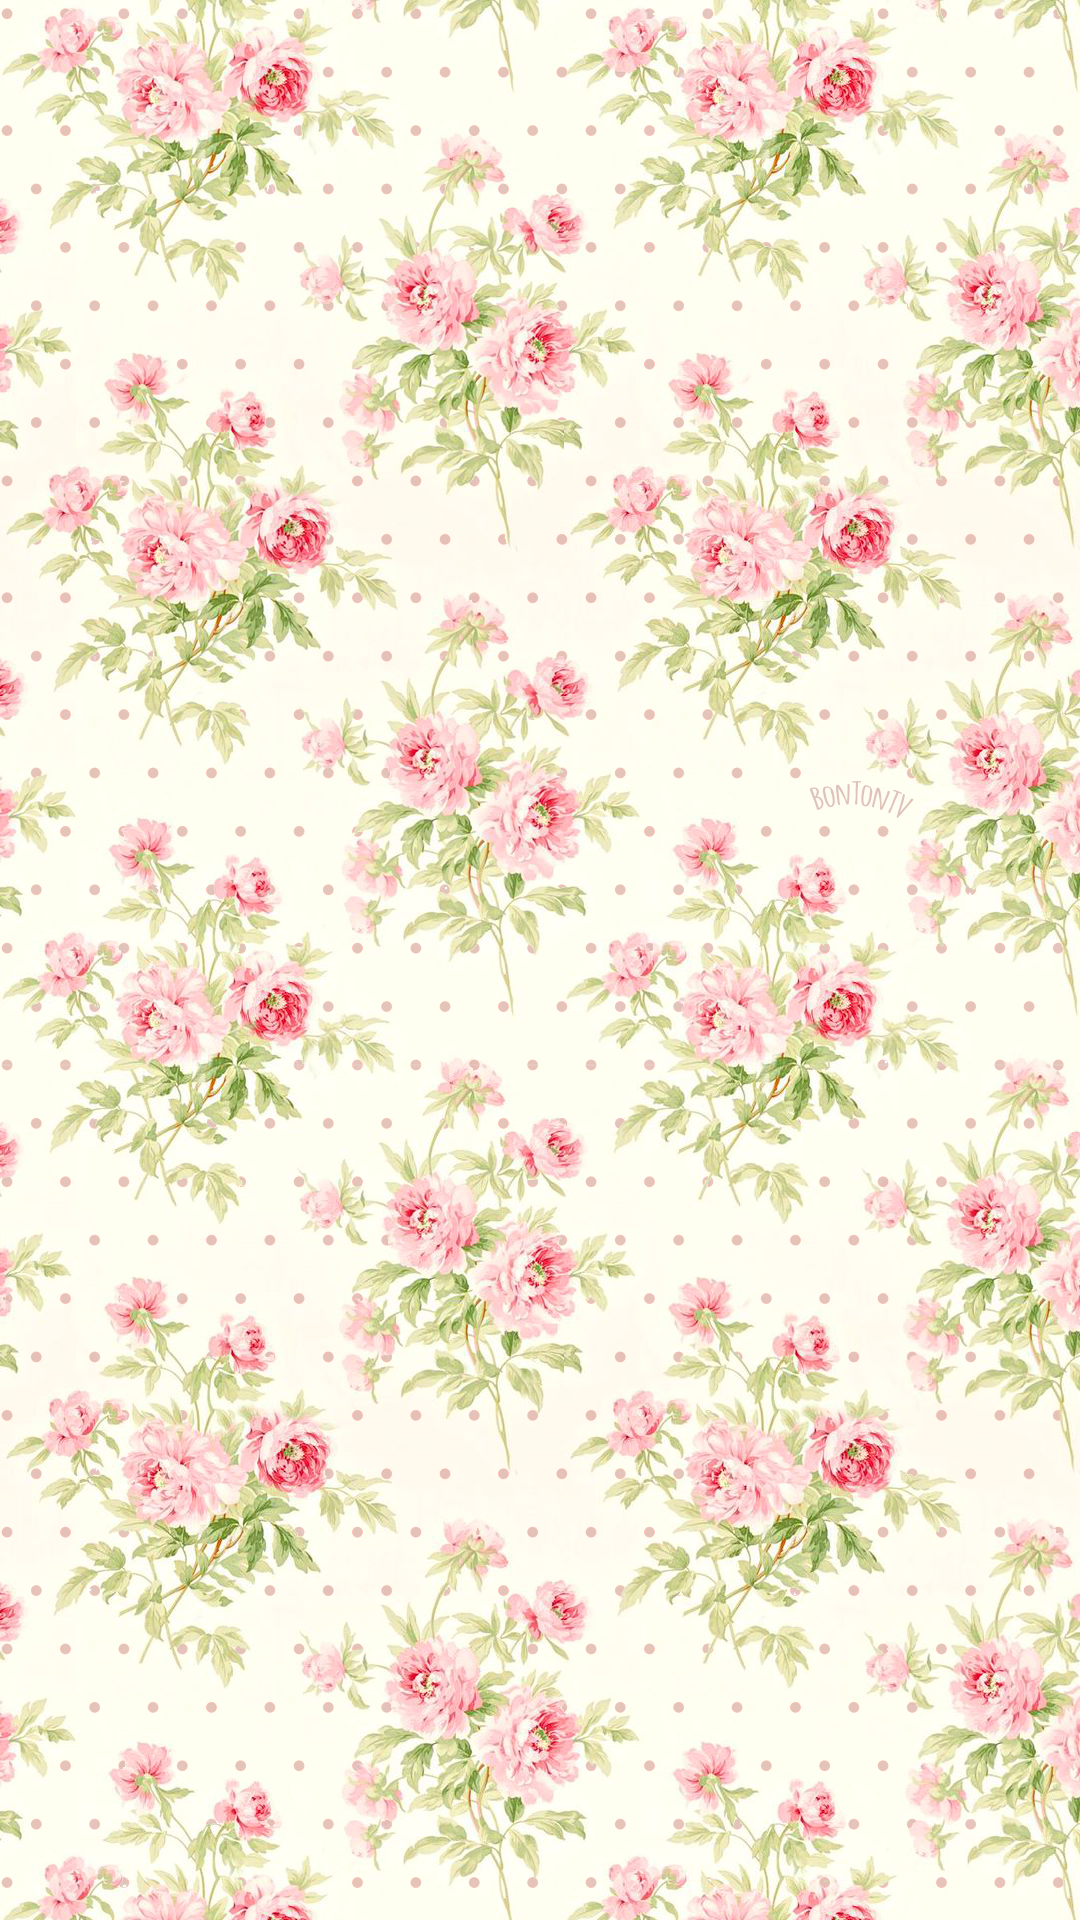 Phone Wallpapers Hd Watercolor Flowers By Bonton Tv Free Backgrounds 1080x1920 Wall Vintage Flowers Wallpaper New Wallpaper Iphone Iphone Wallpaper Hipster